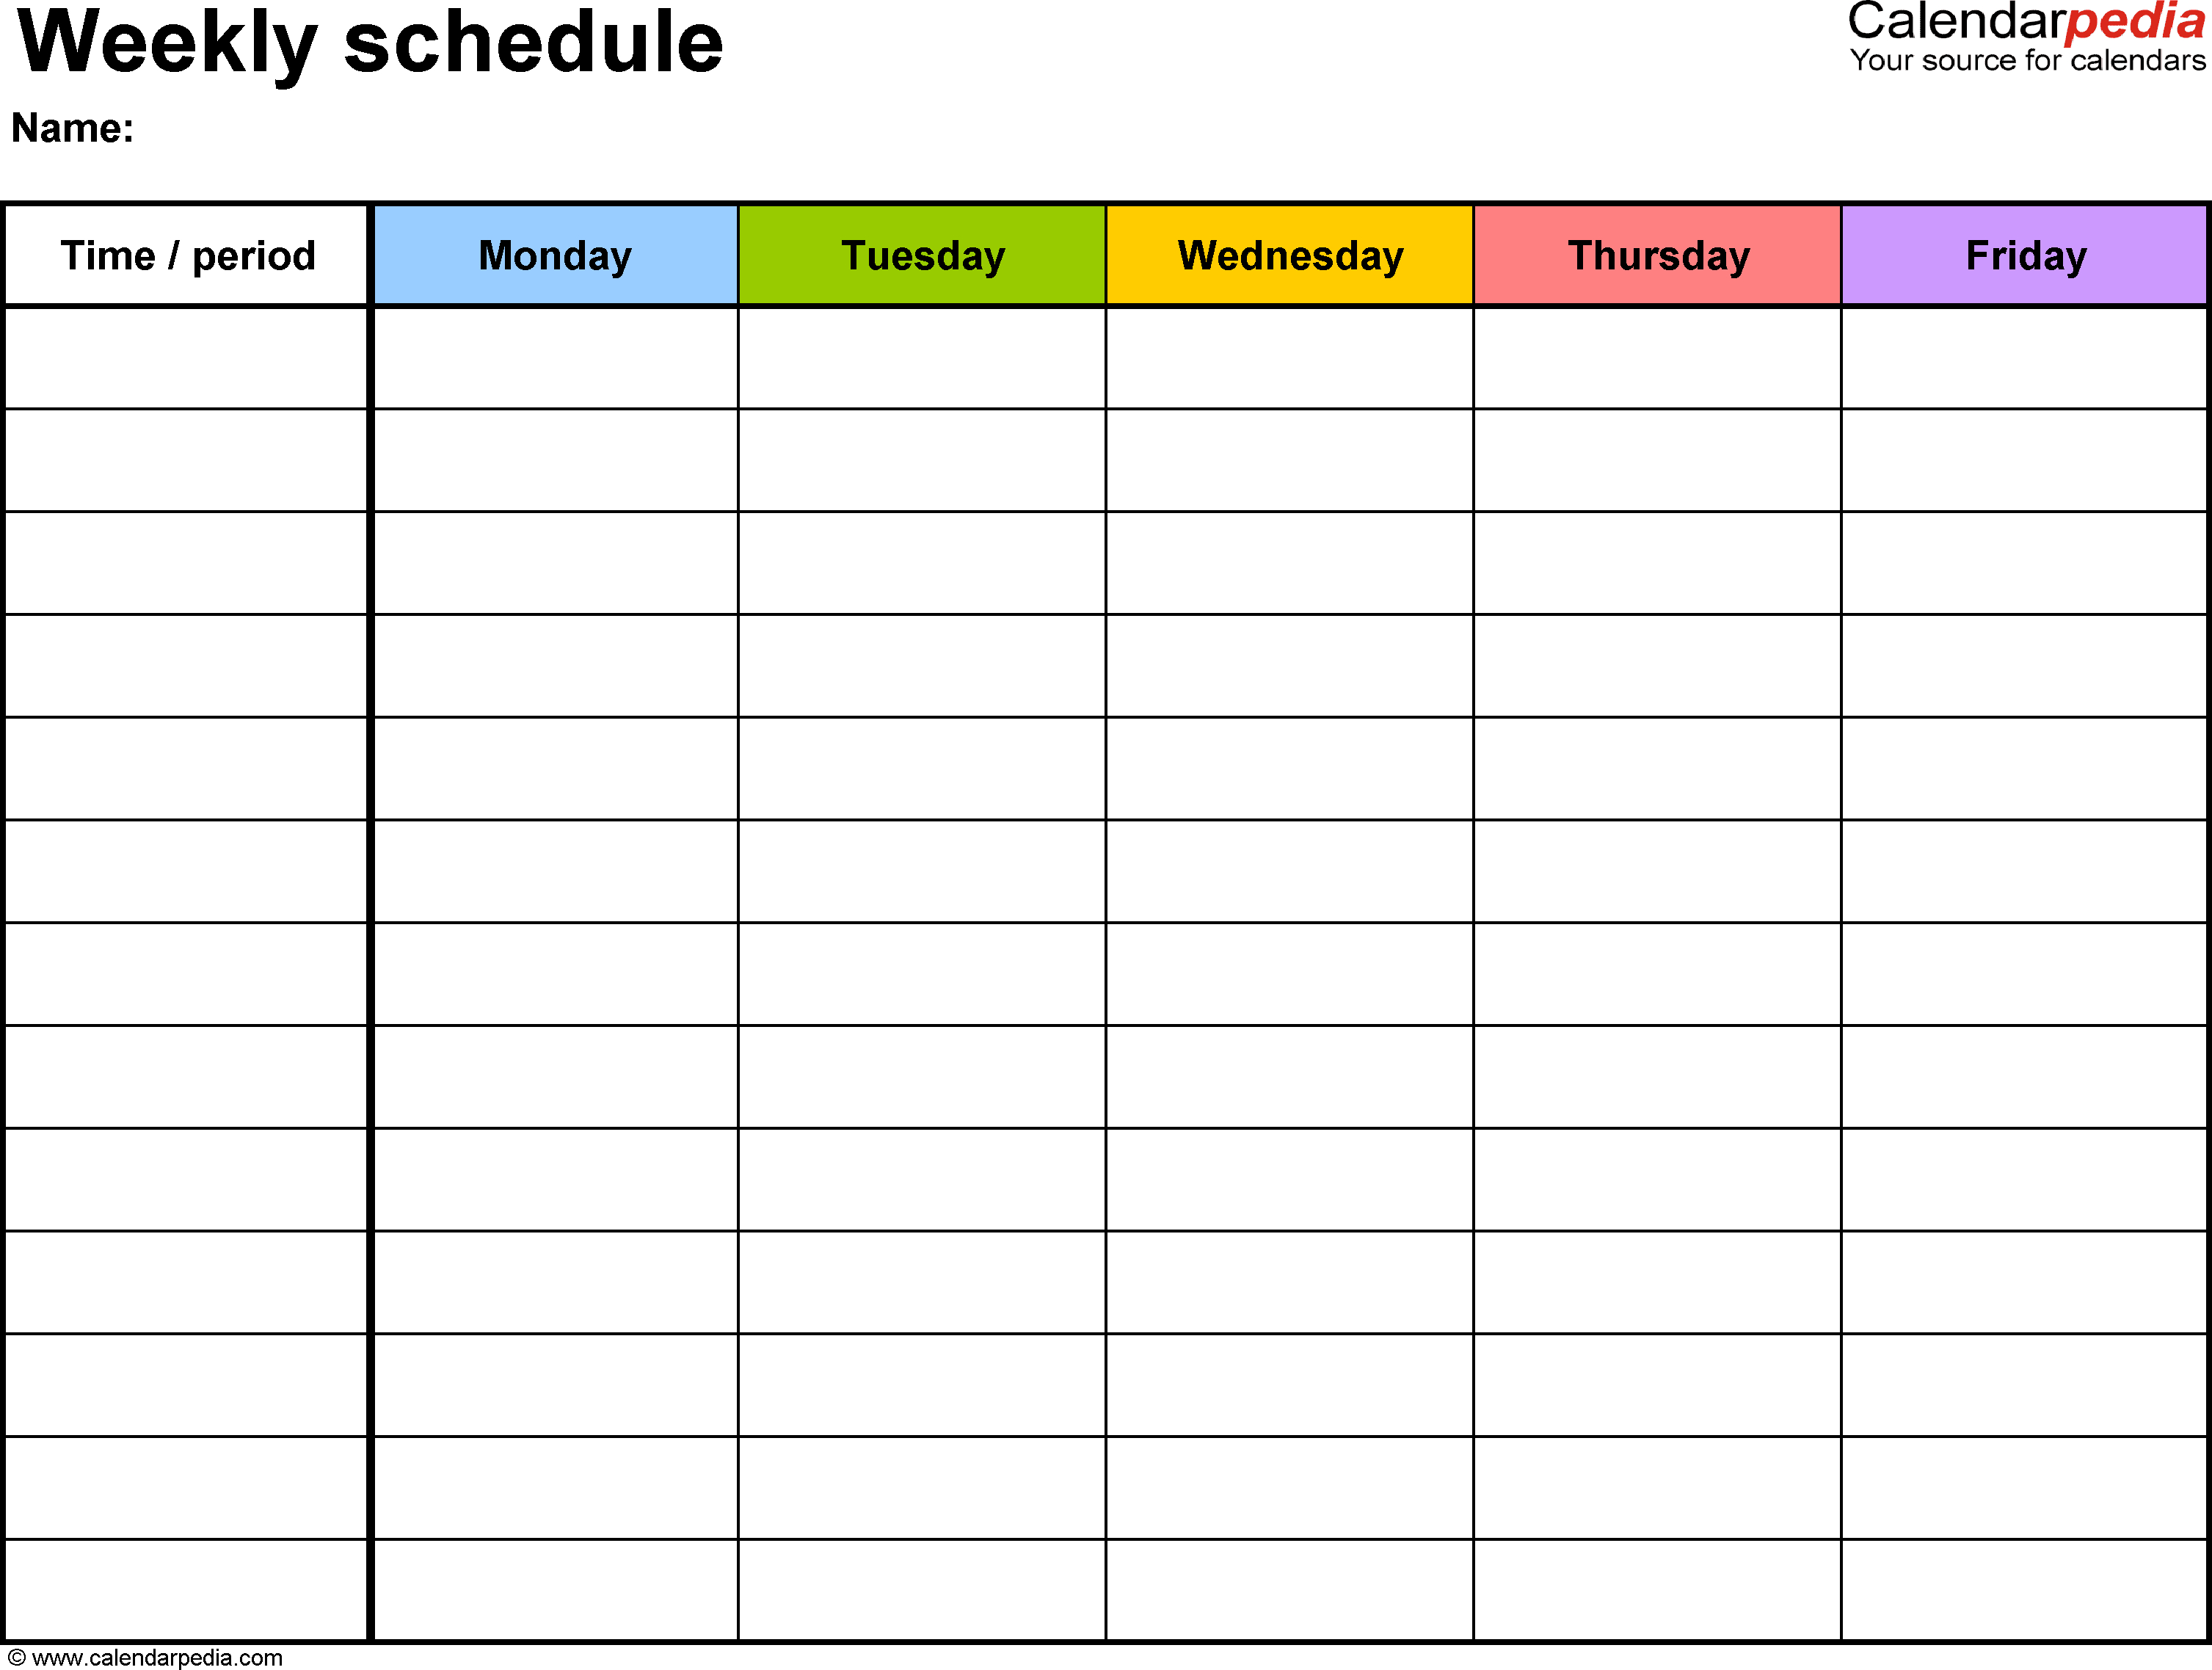 Free Weekly Schedule Templates For Excel - 18 Templates inside Blank 12 Hour Shift Schedule Templates